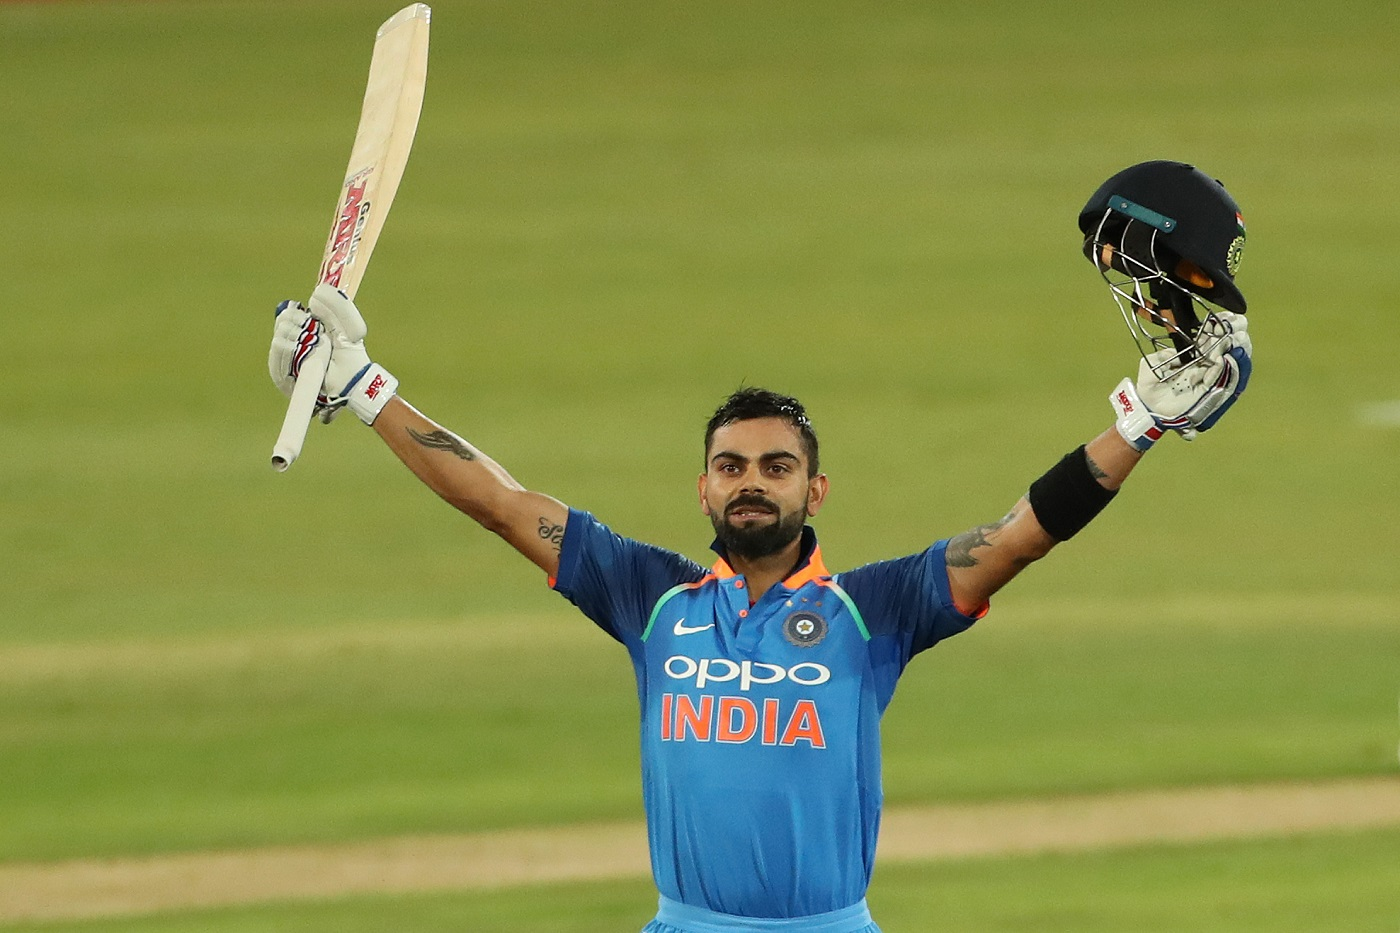 India beat South Africa India won by 8 wickets (with 107 balls remaining) - South Africa vs India, South Africa v India 2018, 6th ODI Match Summary, Report | ESPNcricinfo.com